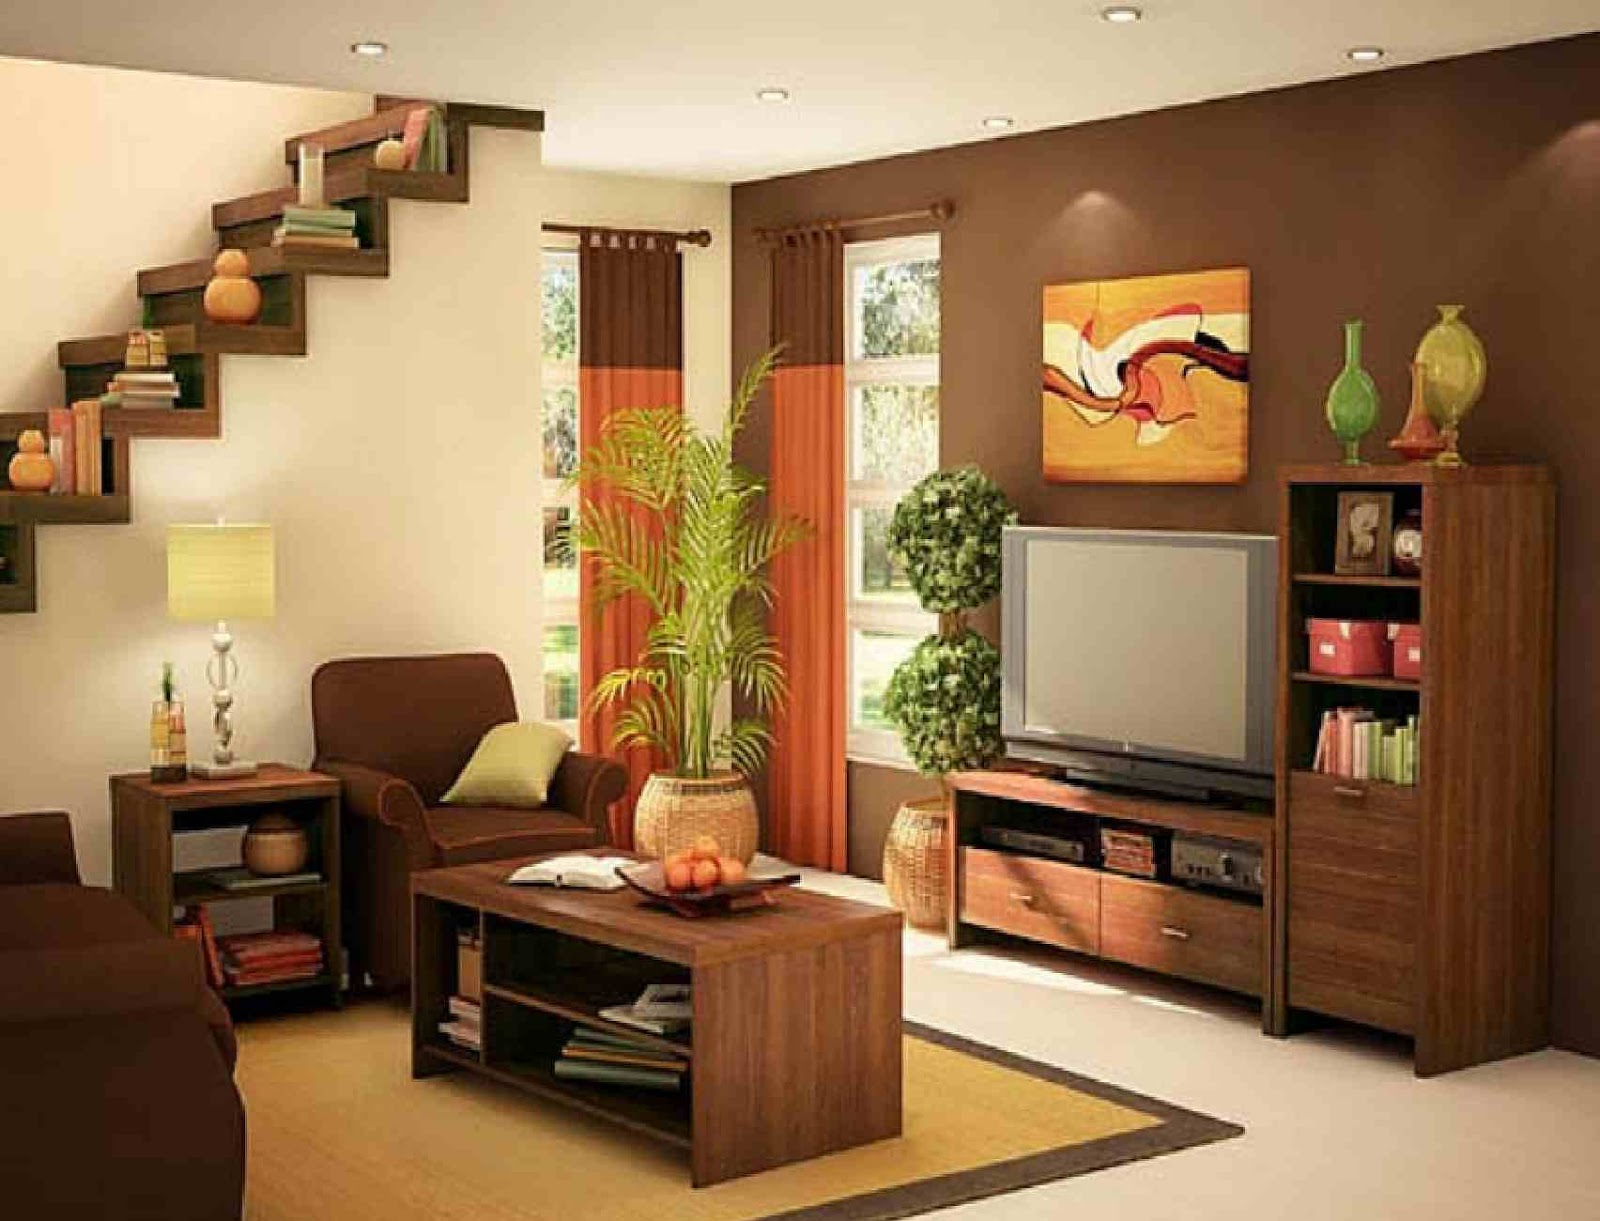 Home interior designs simple living room designs for Home living room design ideas